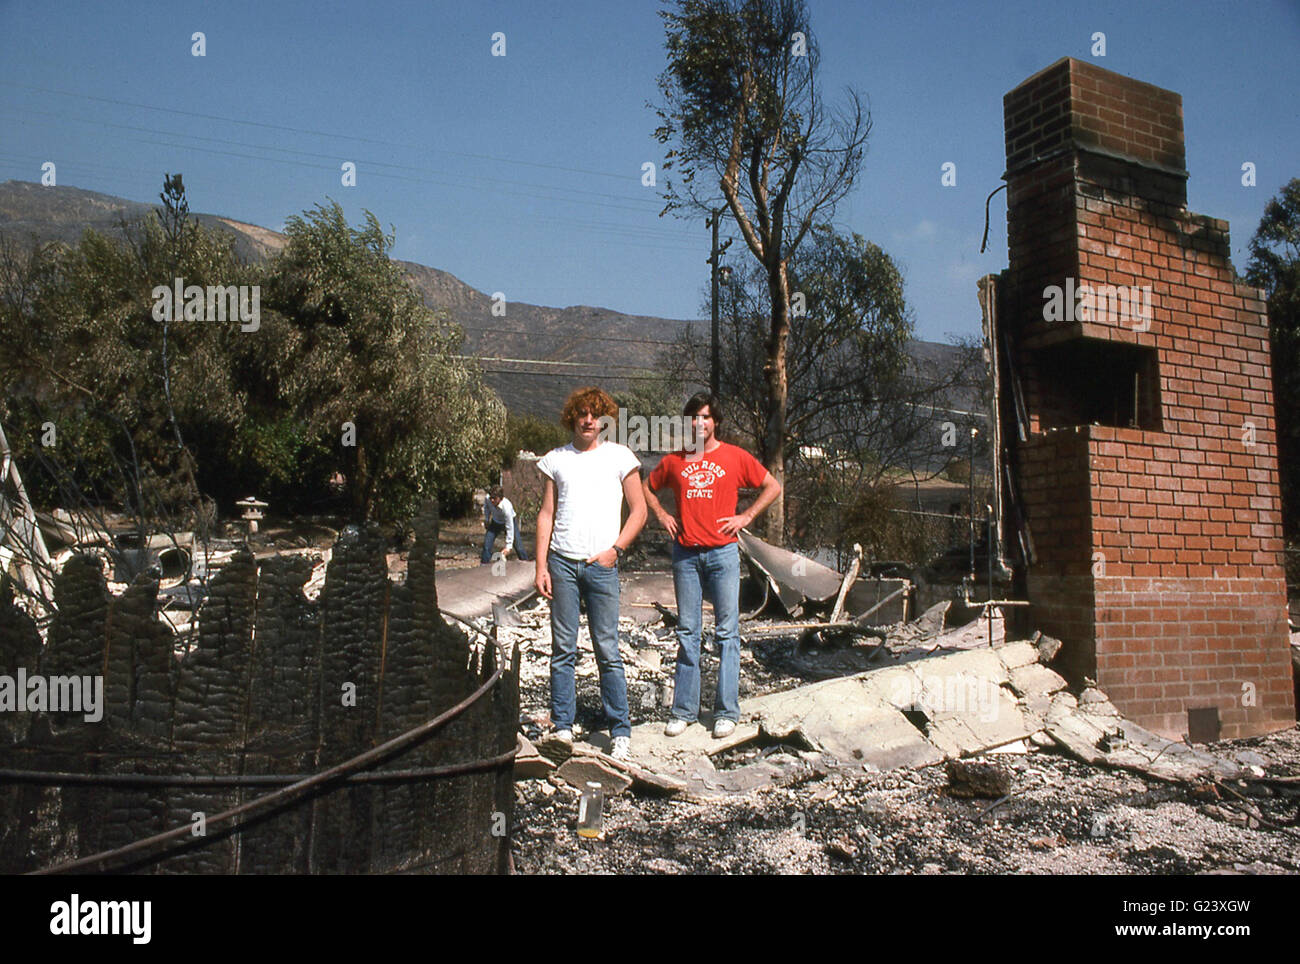 John Paul Getty III , grandson of billionnaire J Paul Getty, and friend Michael Riordan at their burned out home - Stock Image